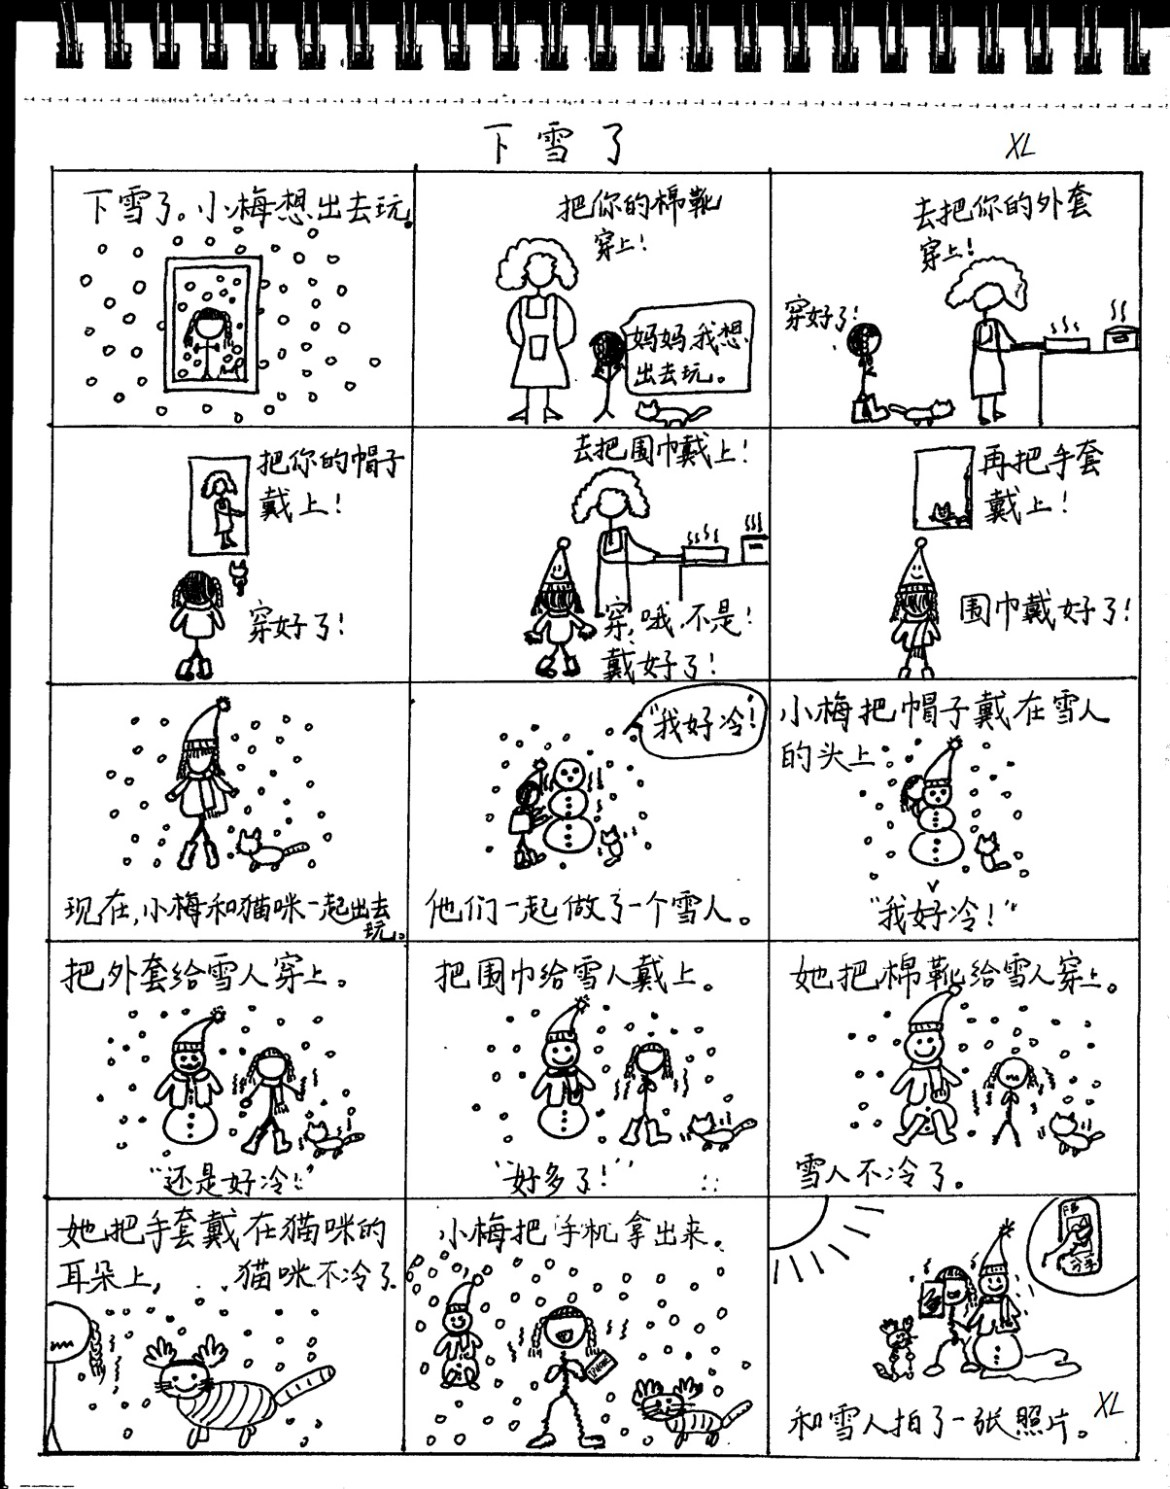 xian_lu_comic_strip_for_cfl_samples9